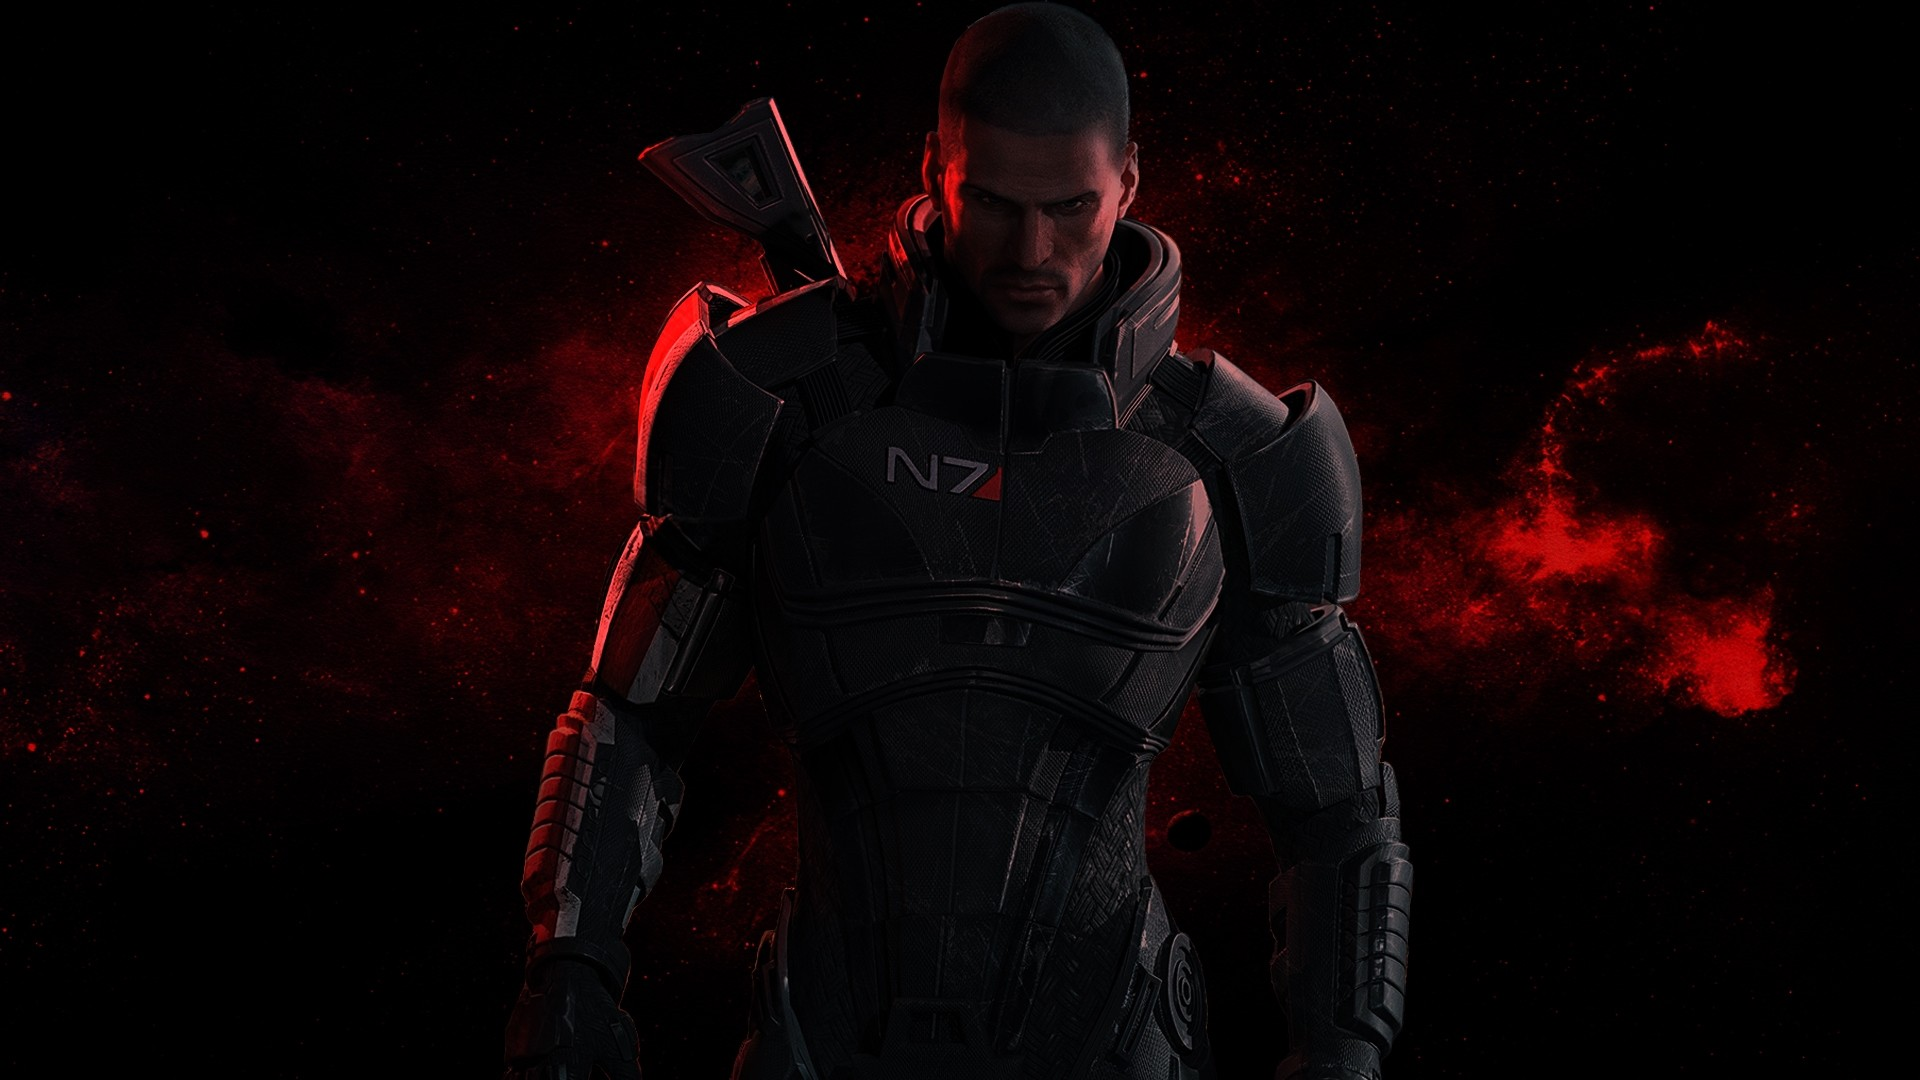 Mass Effect Wallpaper and Background